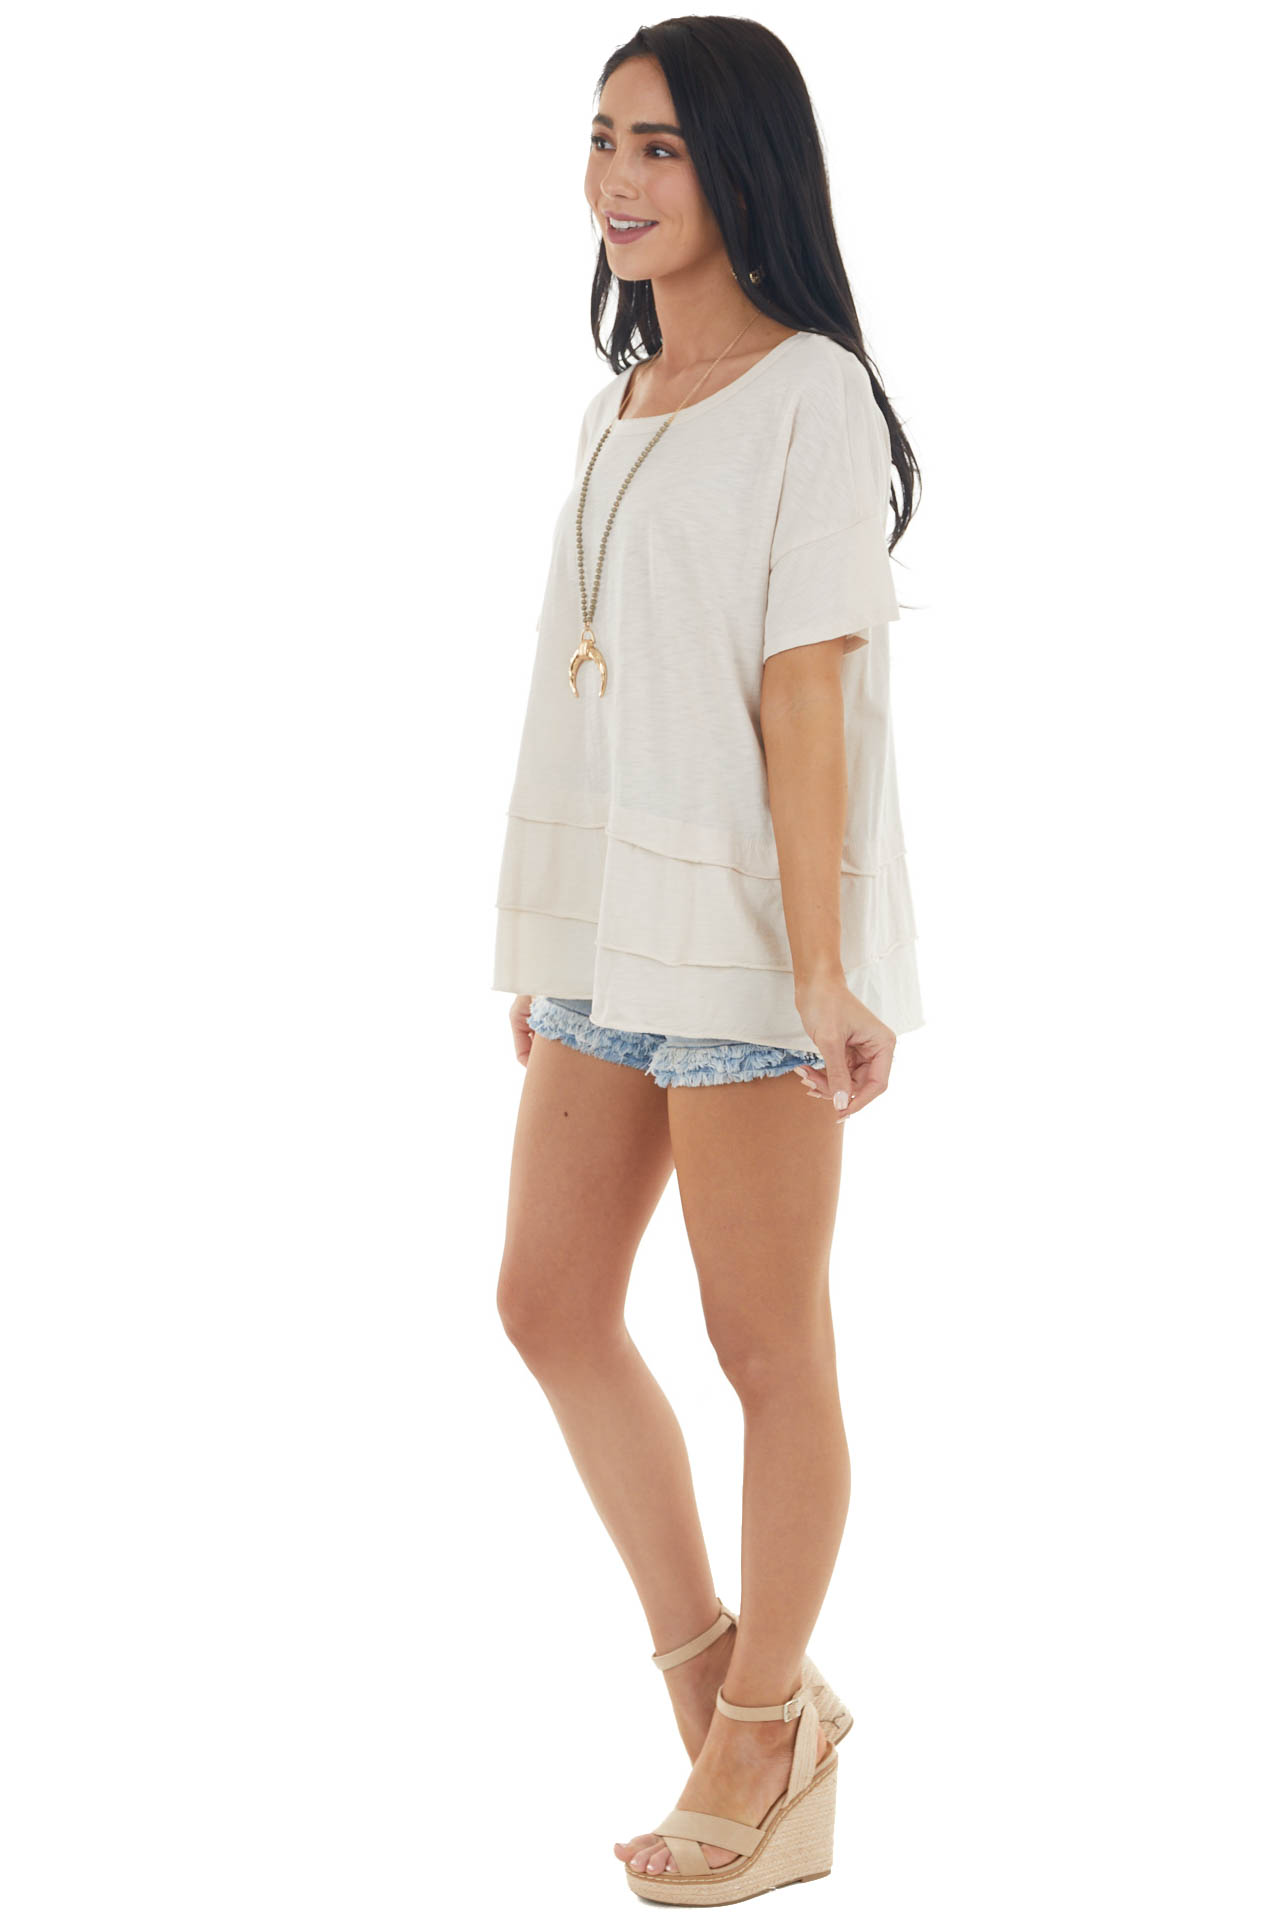 Champagne Tiered Stretchy Knit Top with Short Sleeves